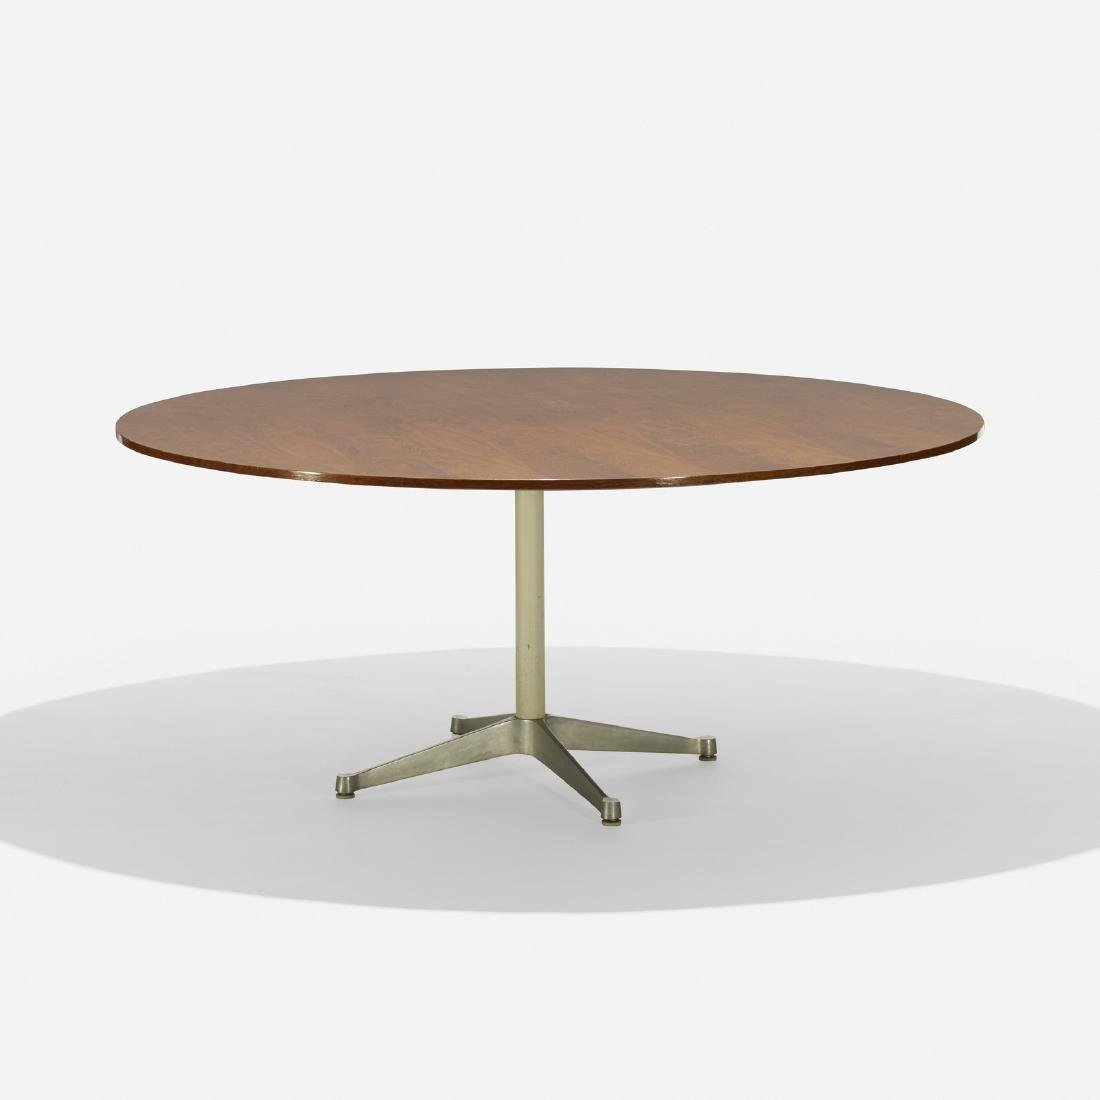 George Nelson, prototype conference/dining table